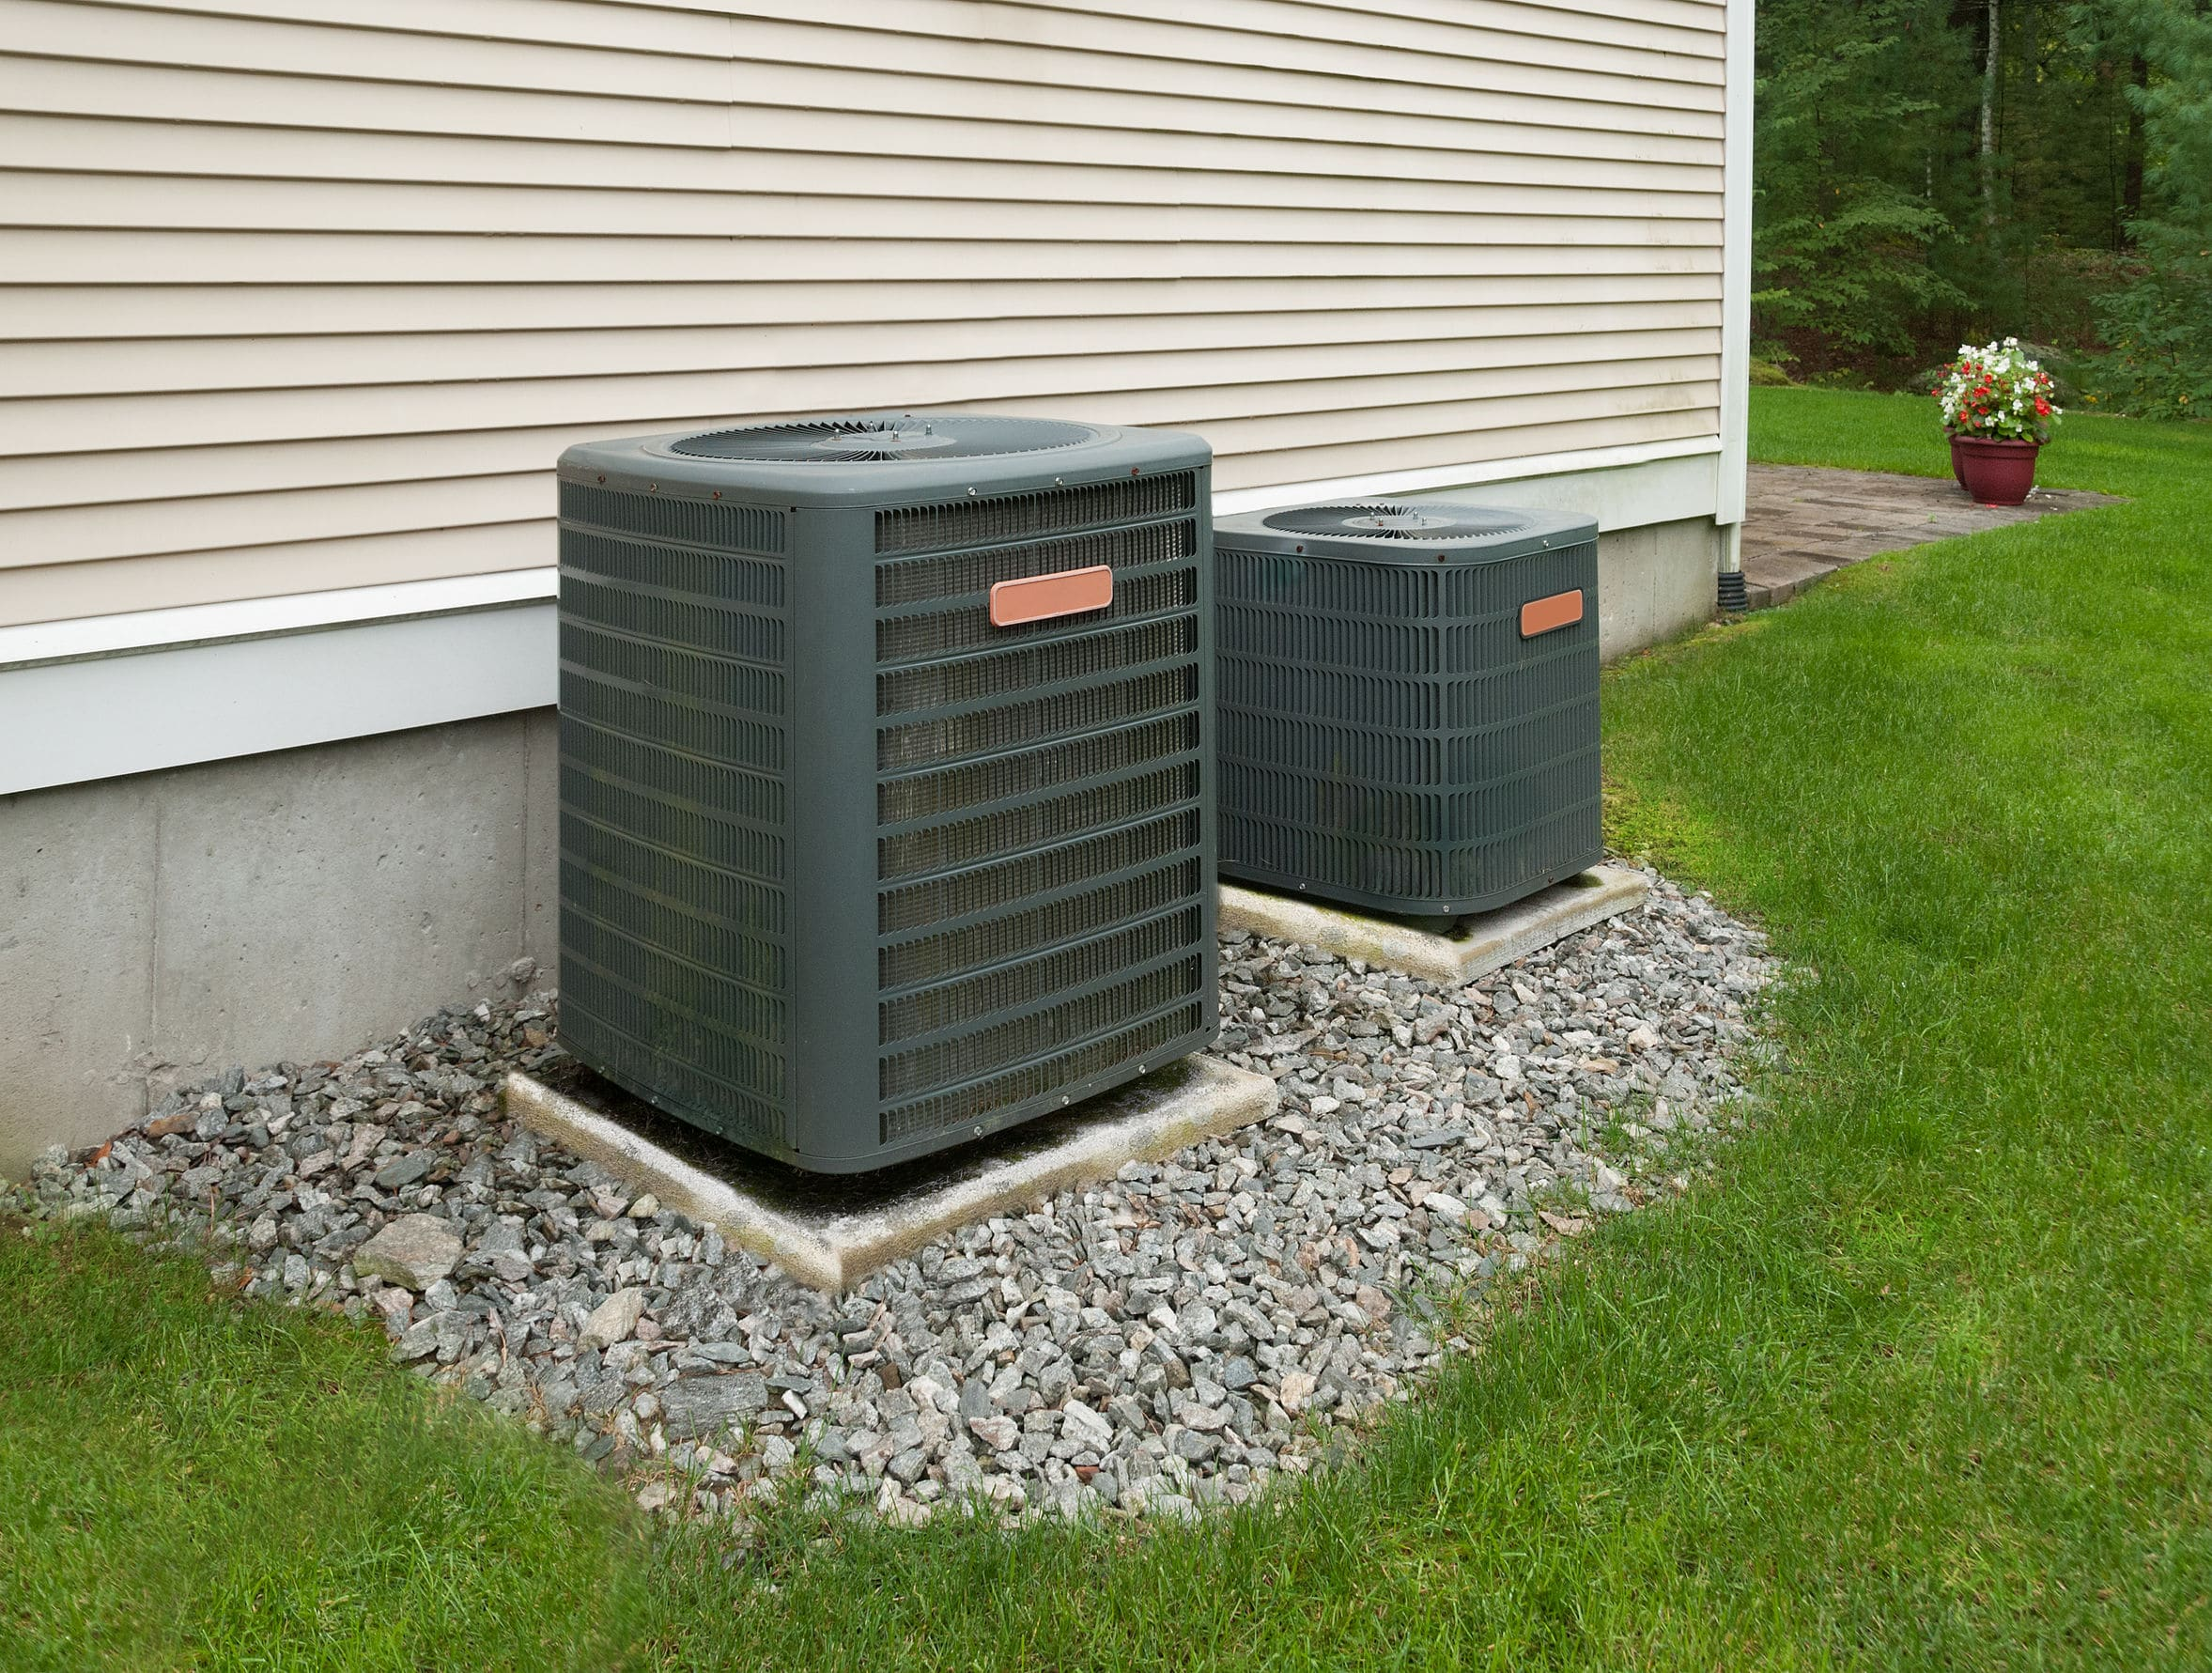 How To Protect Your Outdoor AC Unit